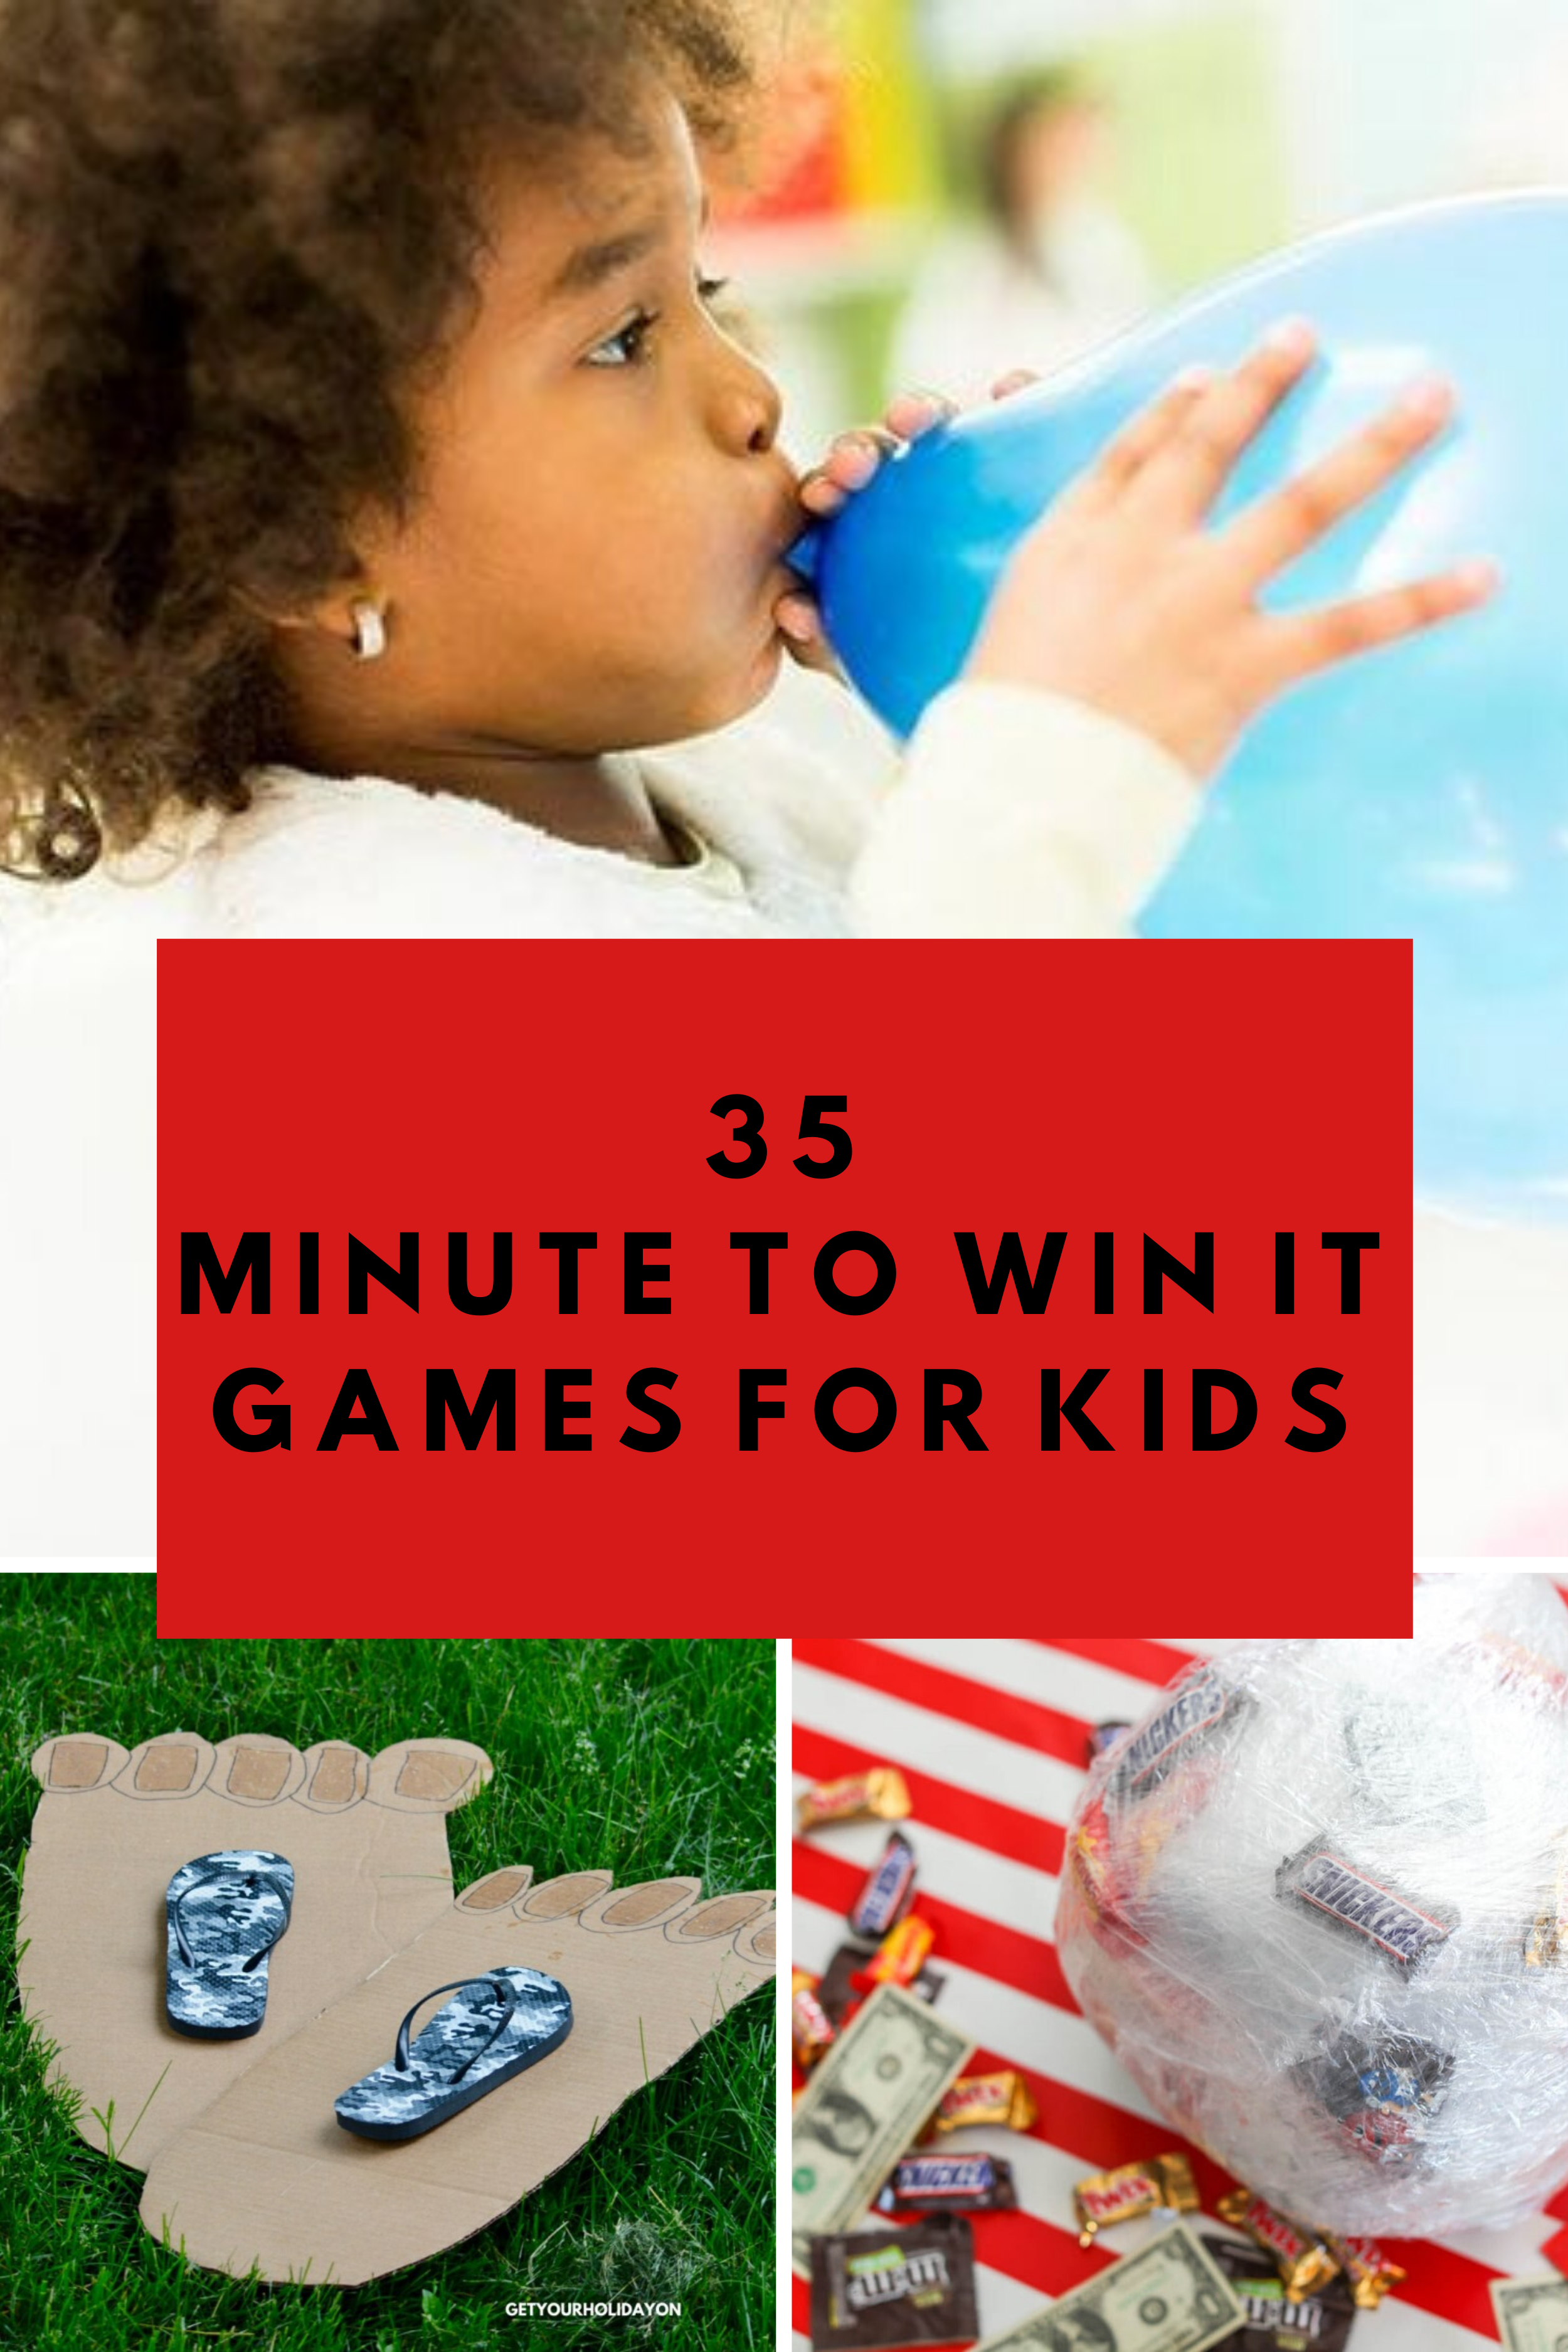 35 Minute to Win It Games for Kids